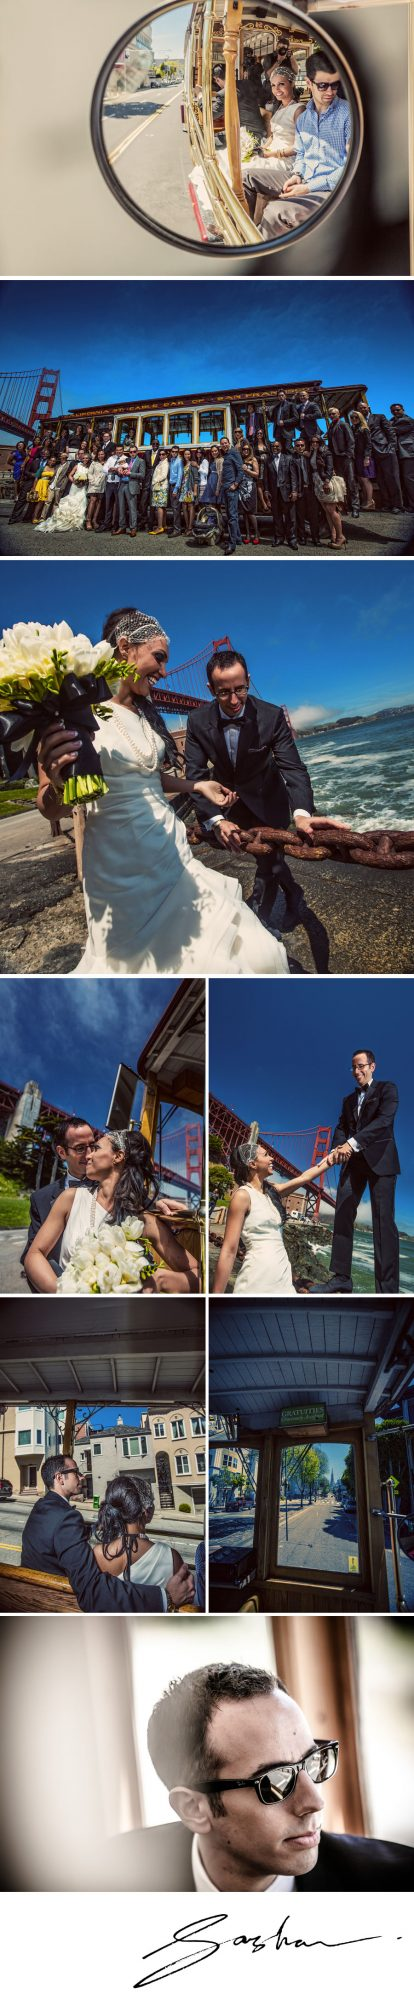 cable car golden gate bridge wedding